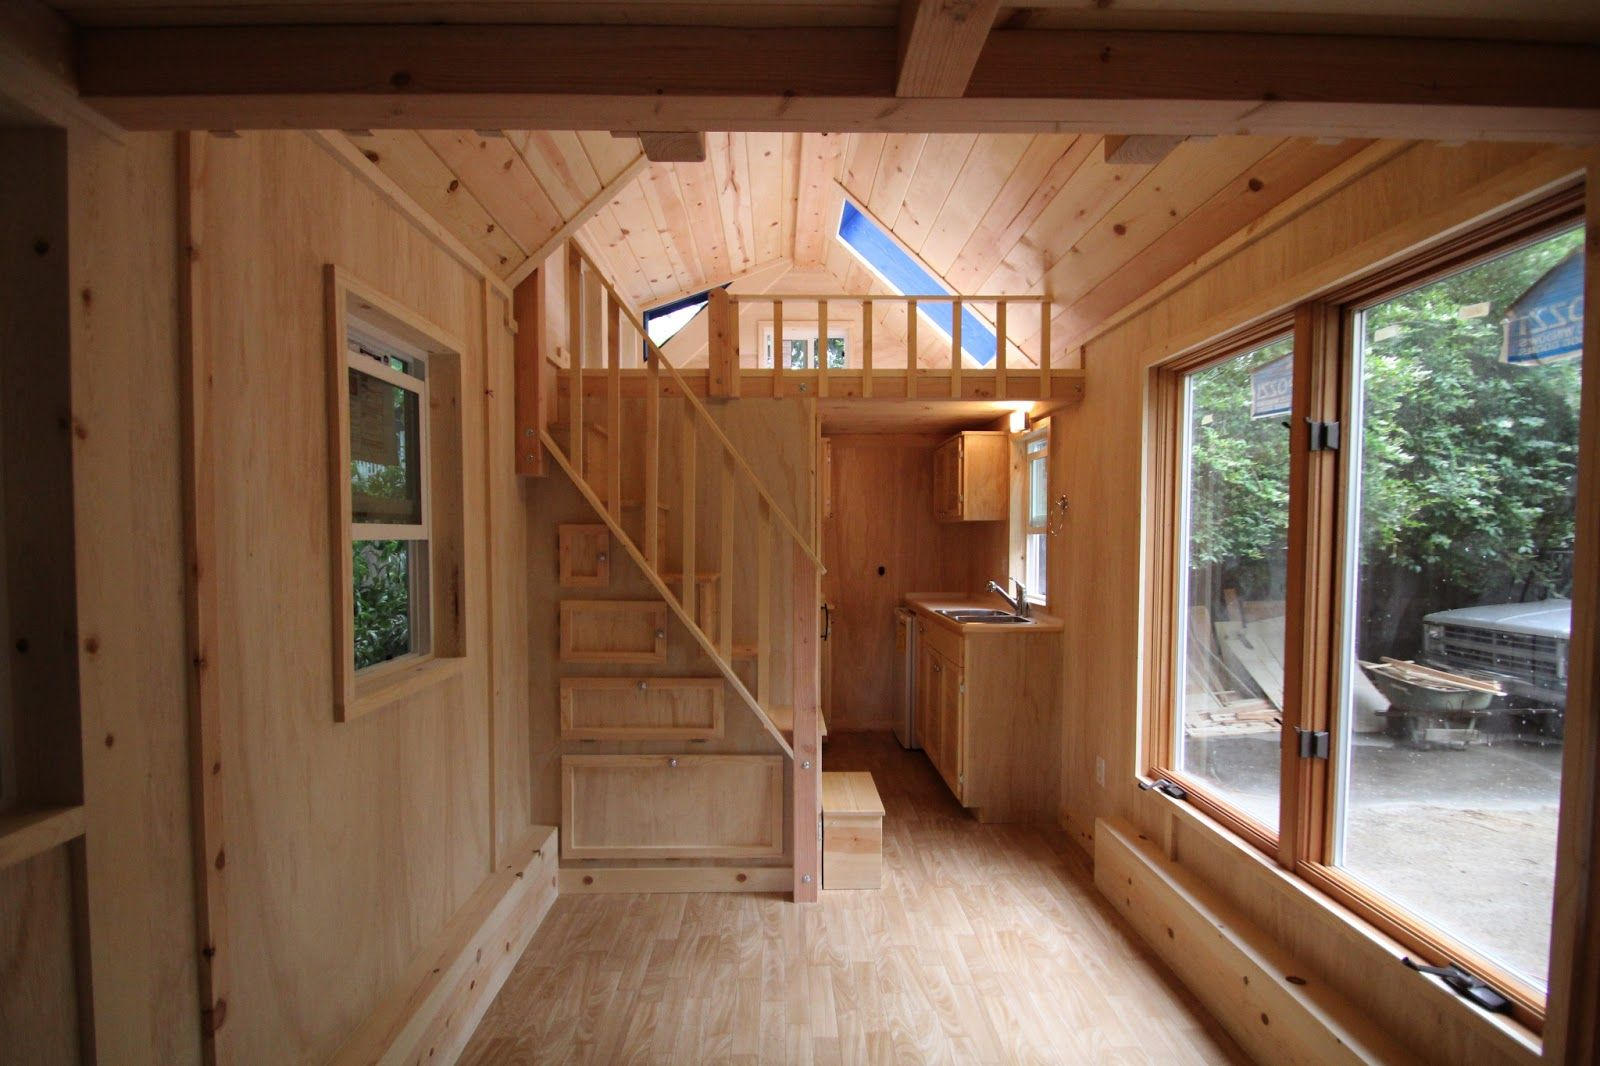 used tiny houses for sale. Tiny Houses For Sale - Google Search Used Y